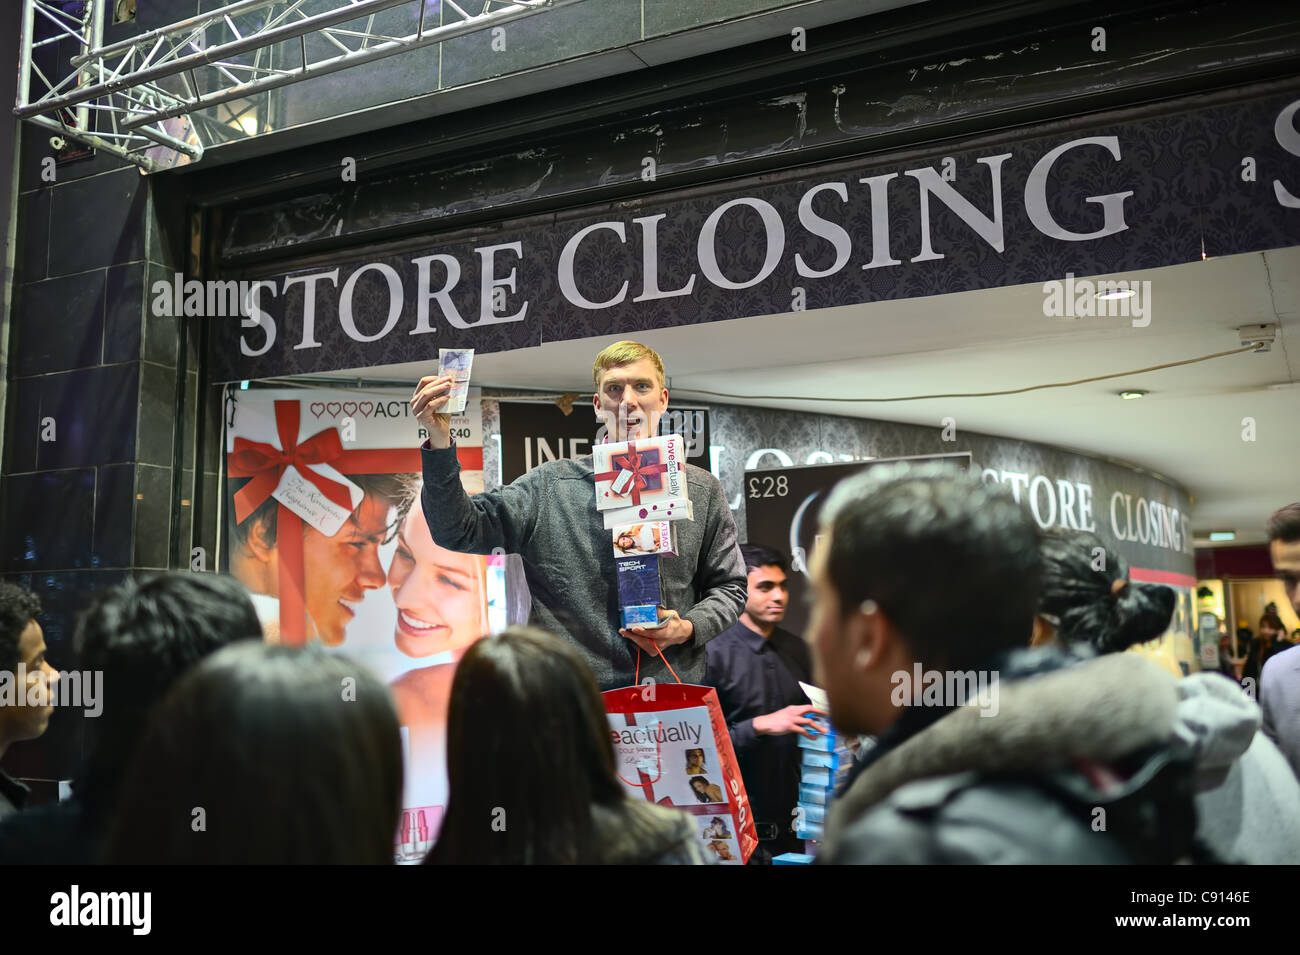 Street salesman selling perfume at store closing down sale, Oxford Street, London - Stock Image